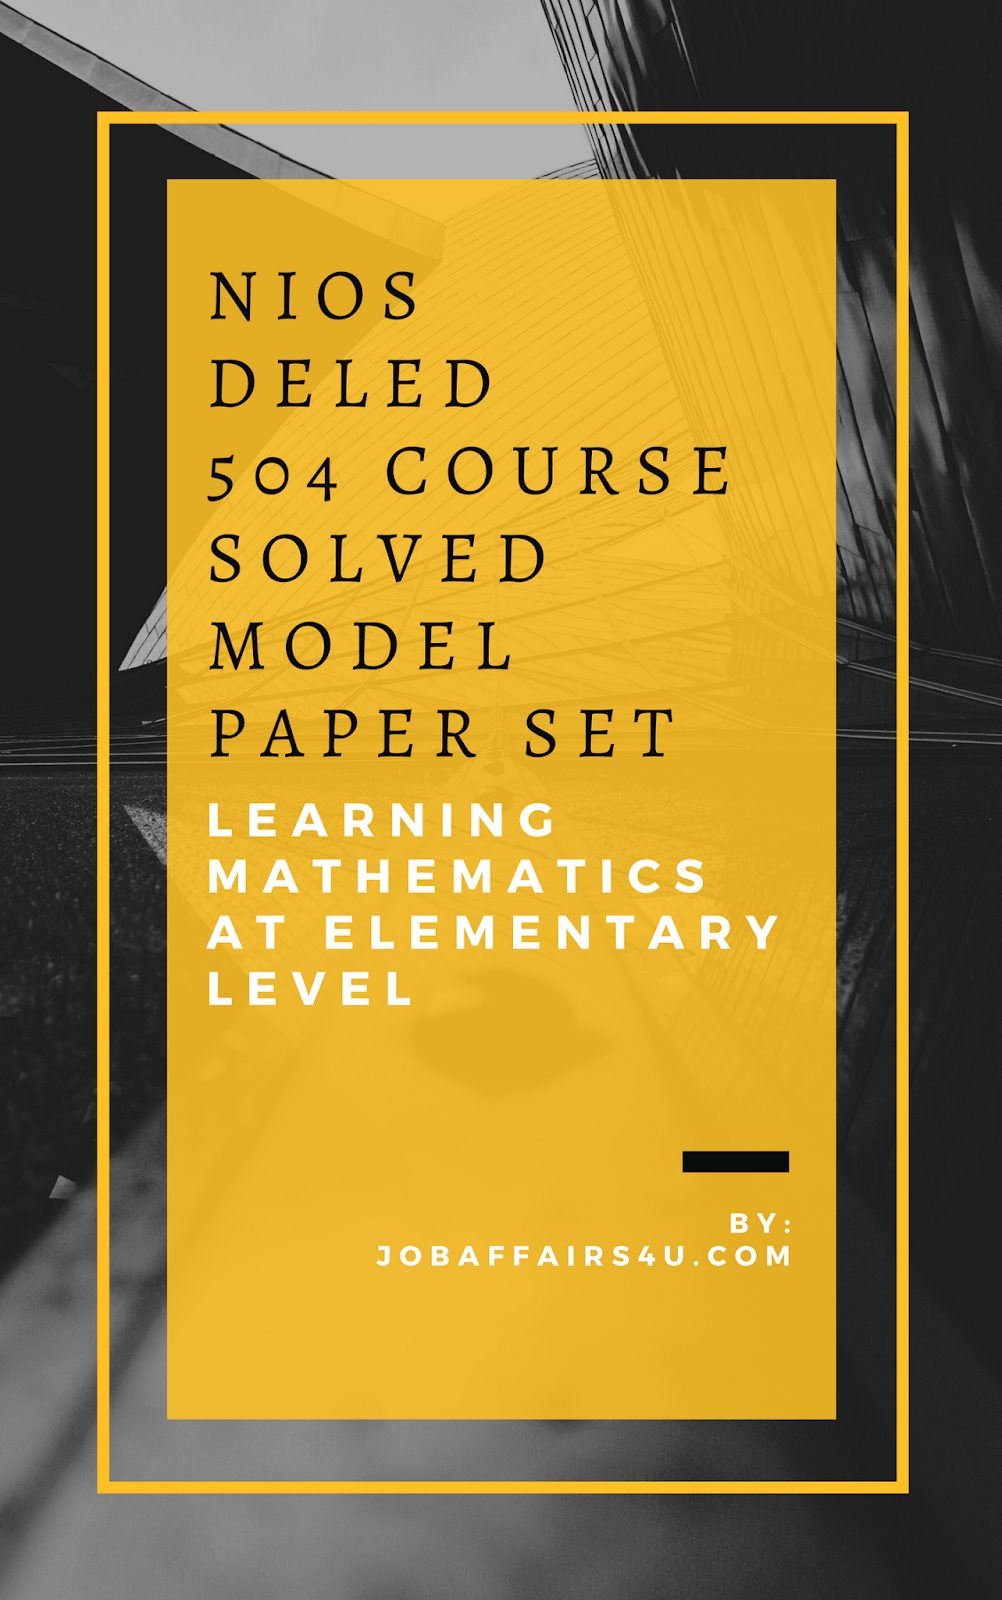 NIOS DELED 504 505 SOLVED MODEL/SAMPLE PAPER IN ENGLISH AND